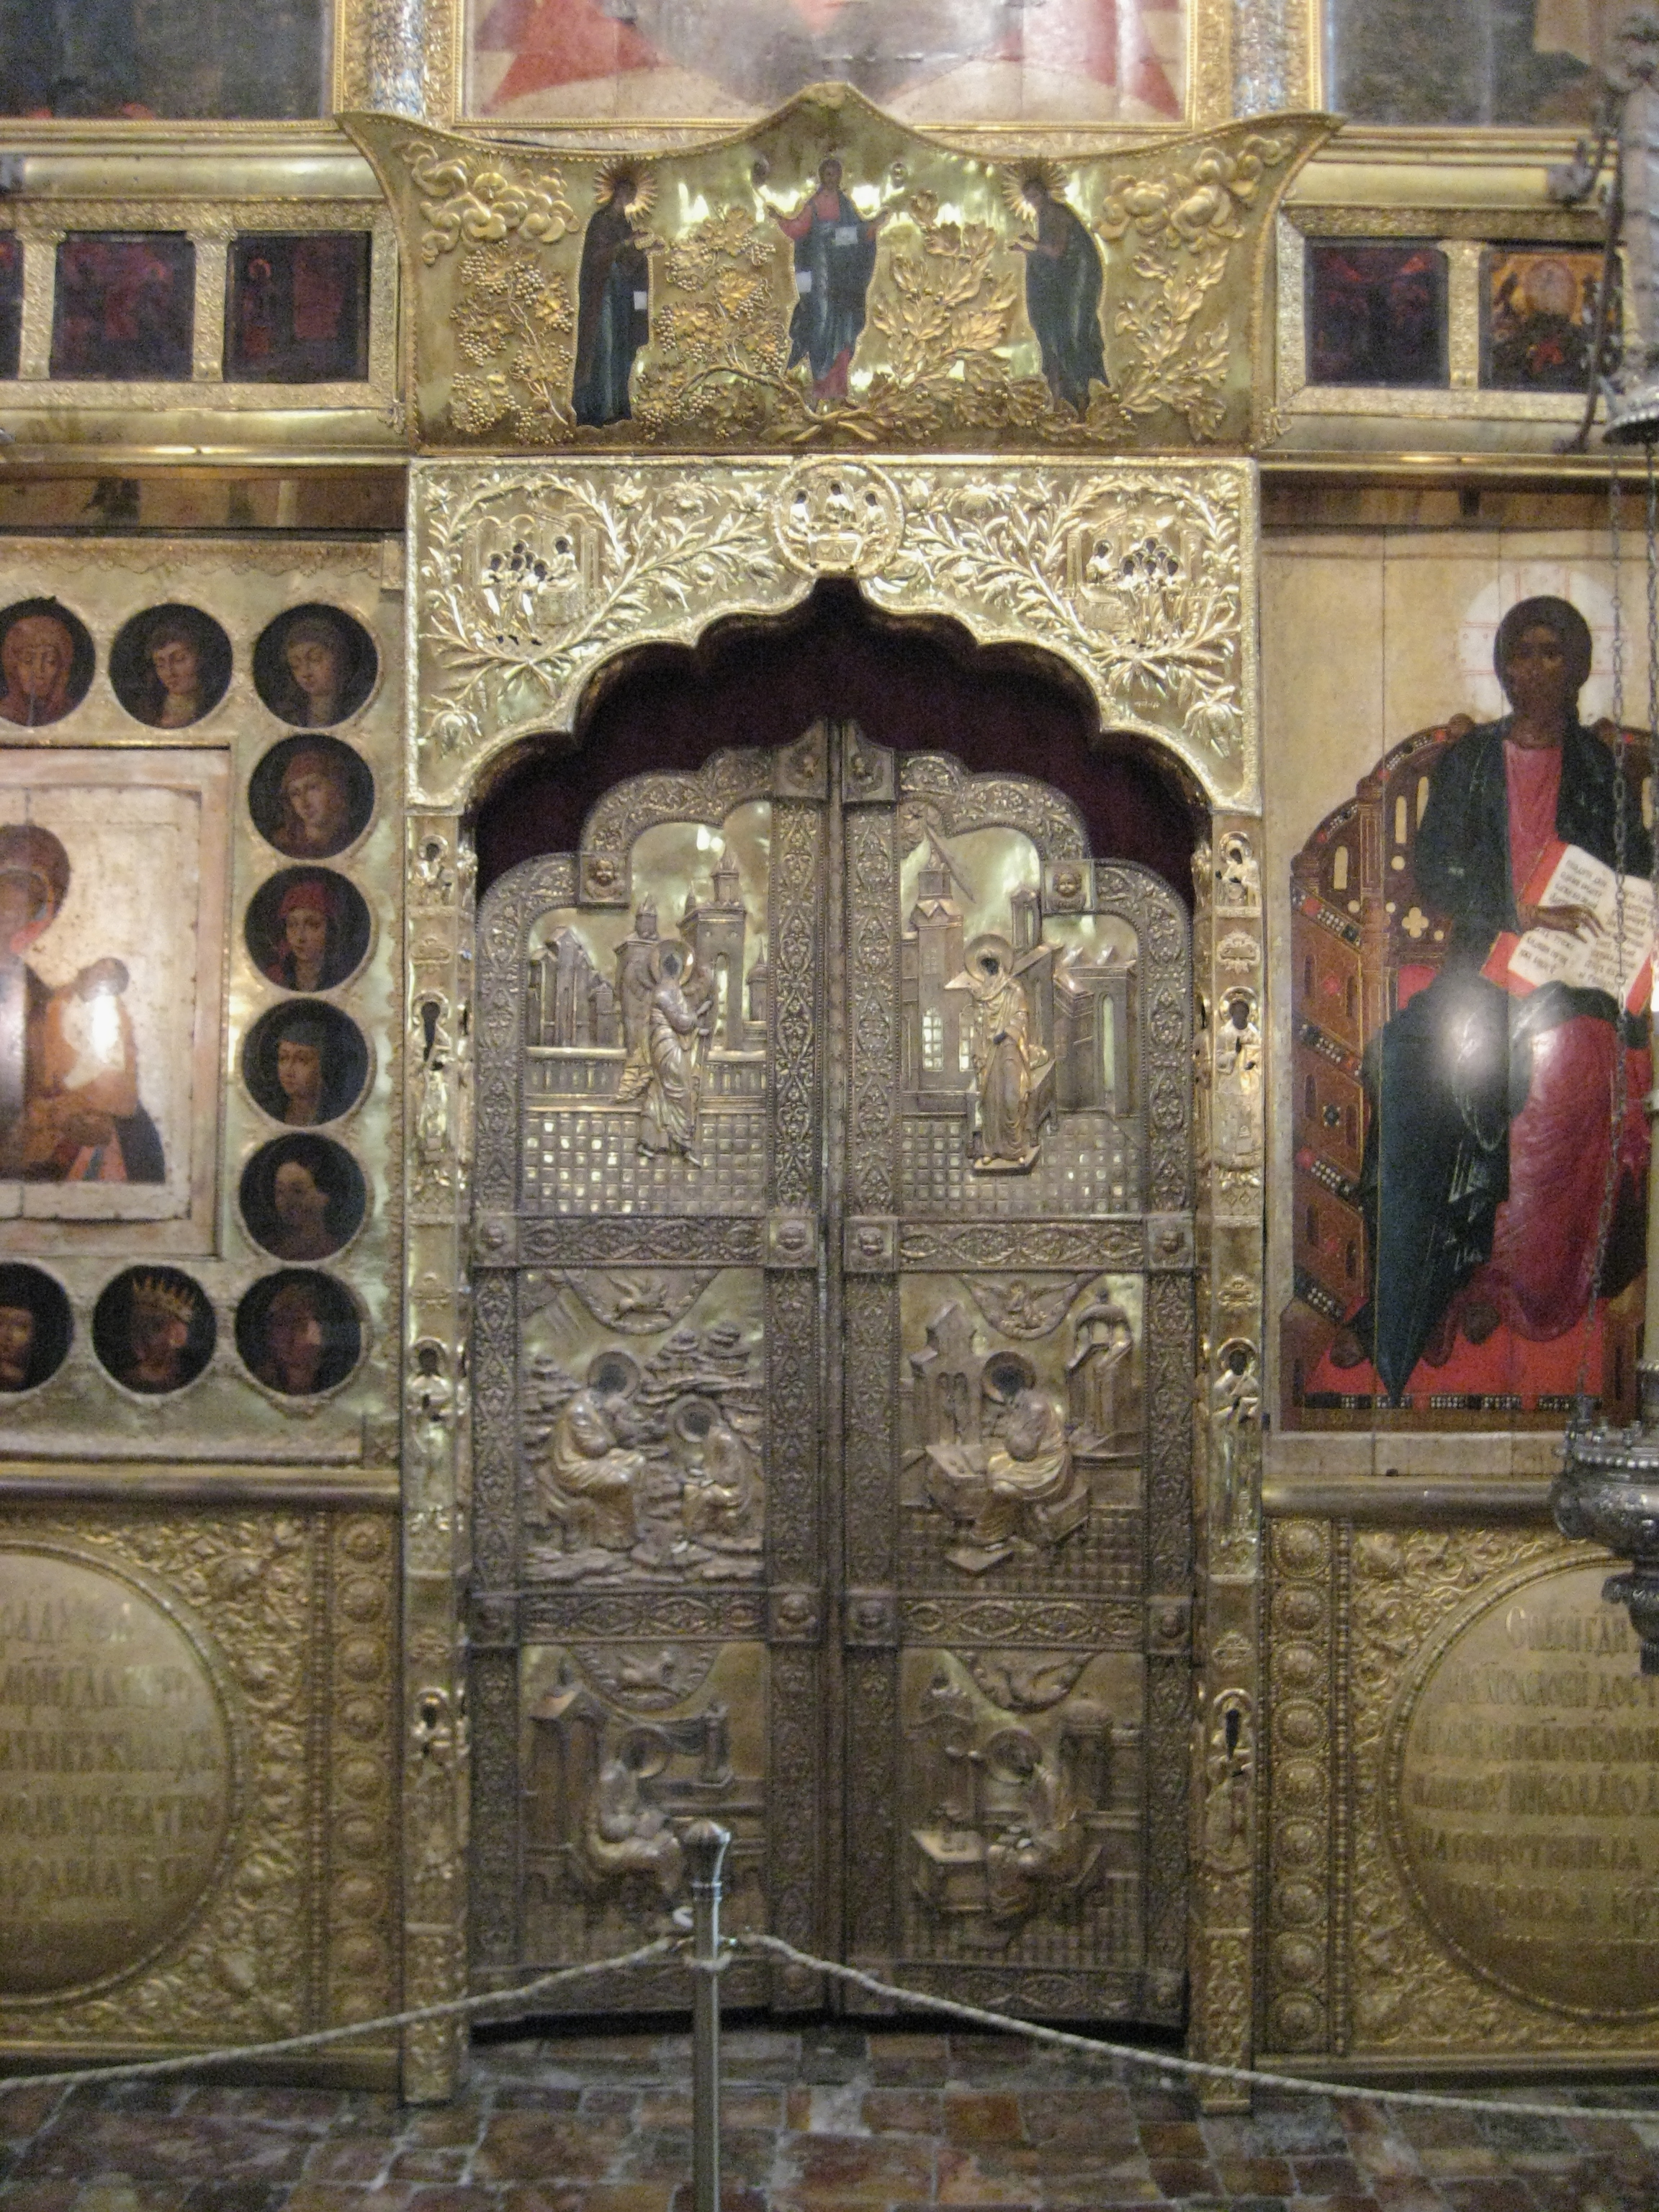 Original file ... & File:Royal doors (Annunciation Cathedral in Moscow) 01 by shakko ...